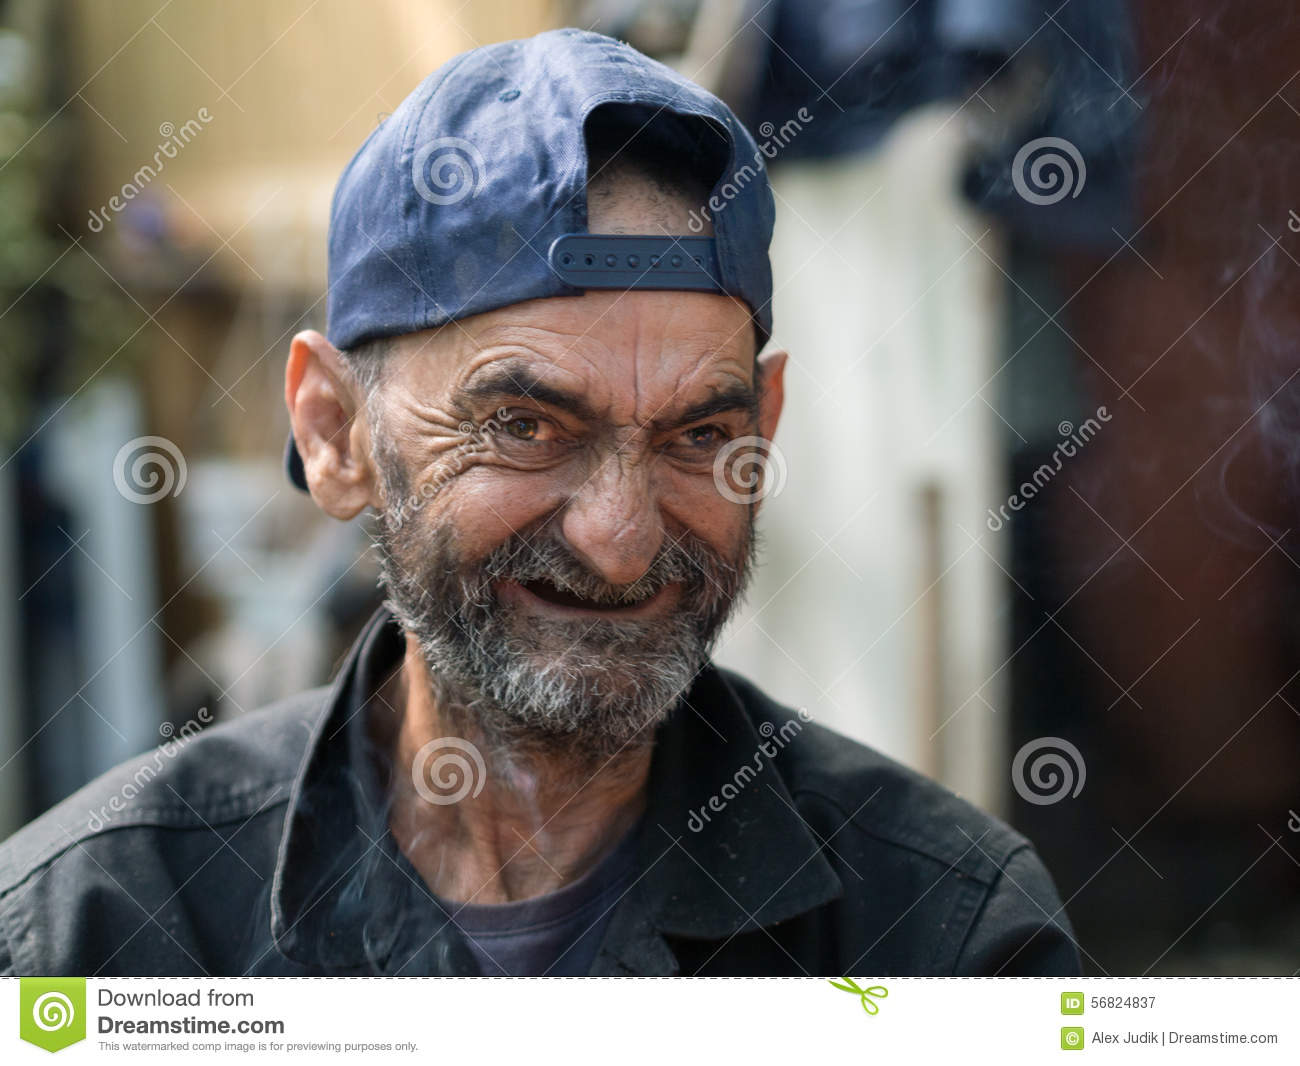 Stock Photo Old Dirty Homeless Man Ugly Laughing Image56824837 on Toothbrush Clip Art